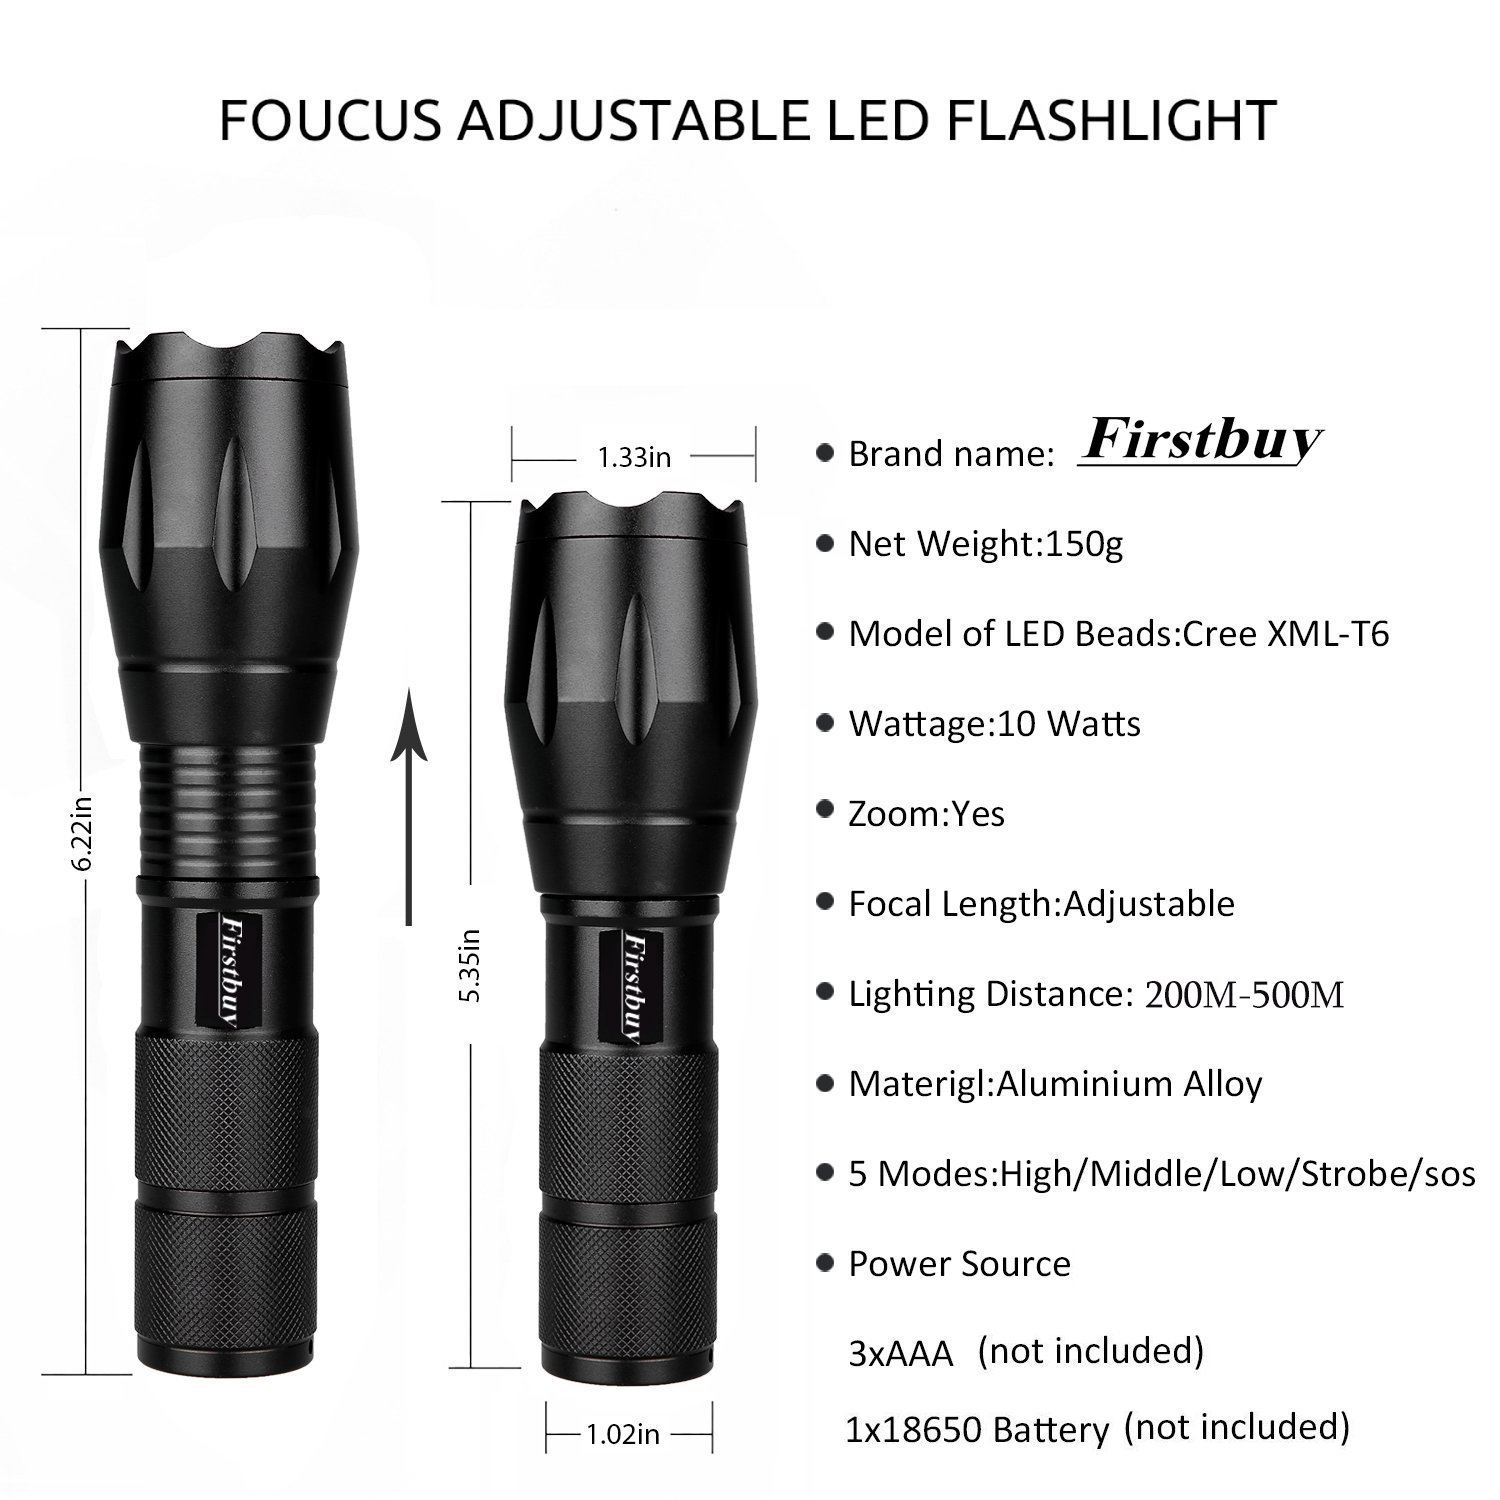 Best Tactical LED Flashlight,Firstbuy 1000Lumens Ultra BrightHandheld Lamp Portable Torch Zoomable LightOutdoor Water Resistant Lantern with Adjustable Focus 5 Modes for Hiking Camping (2 Pack)